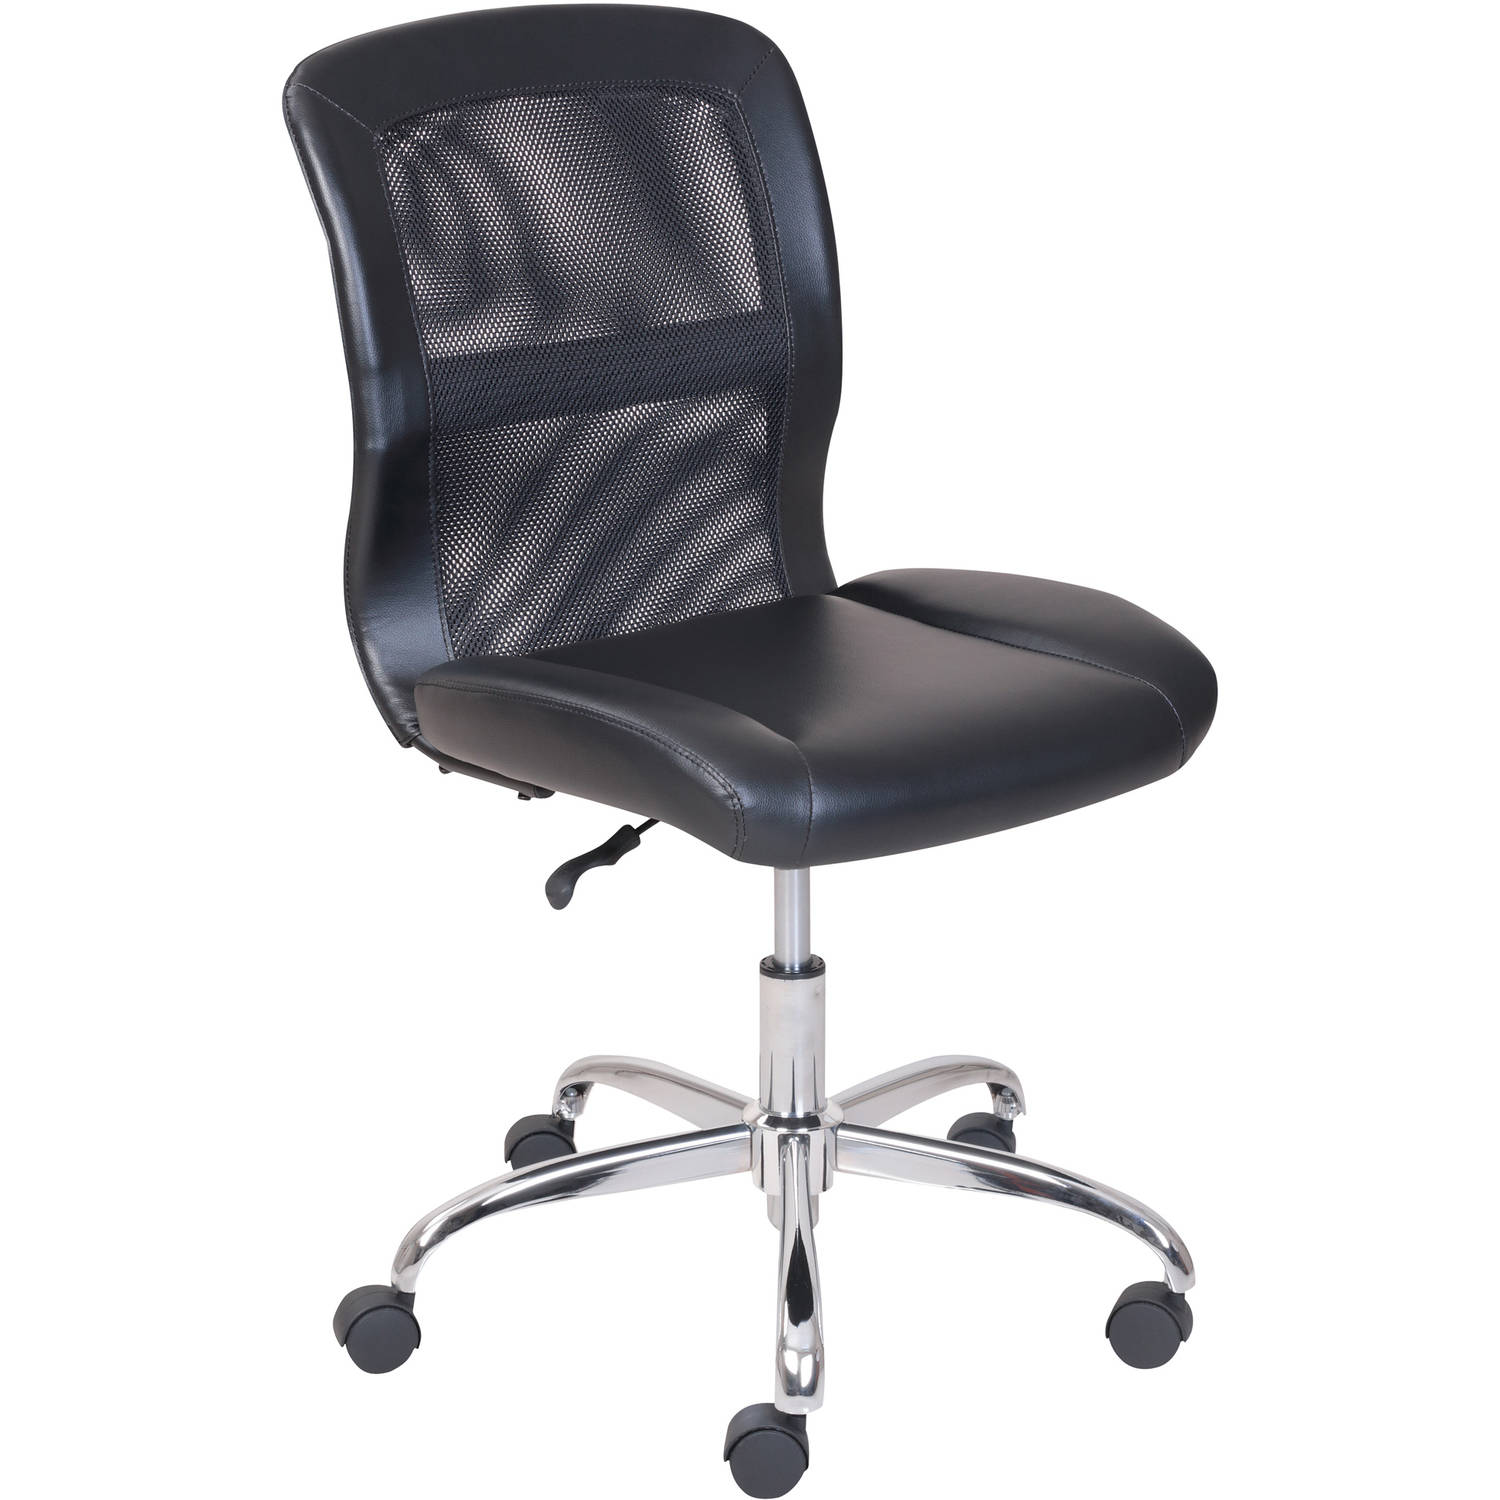 Incredible Details About Mainstays Vinyl And Mesh Task Office Chair Multiple Colors Office Adjustable Spiritservingveterans Wood Chair Design Ideas Spiritservingveteransorg